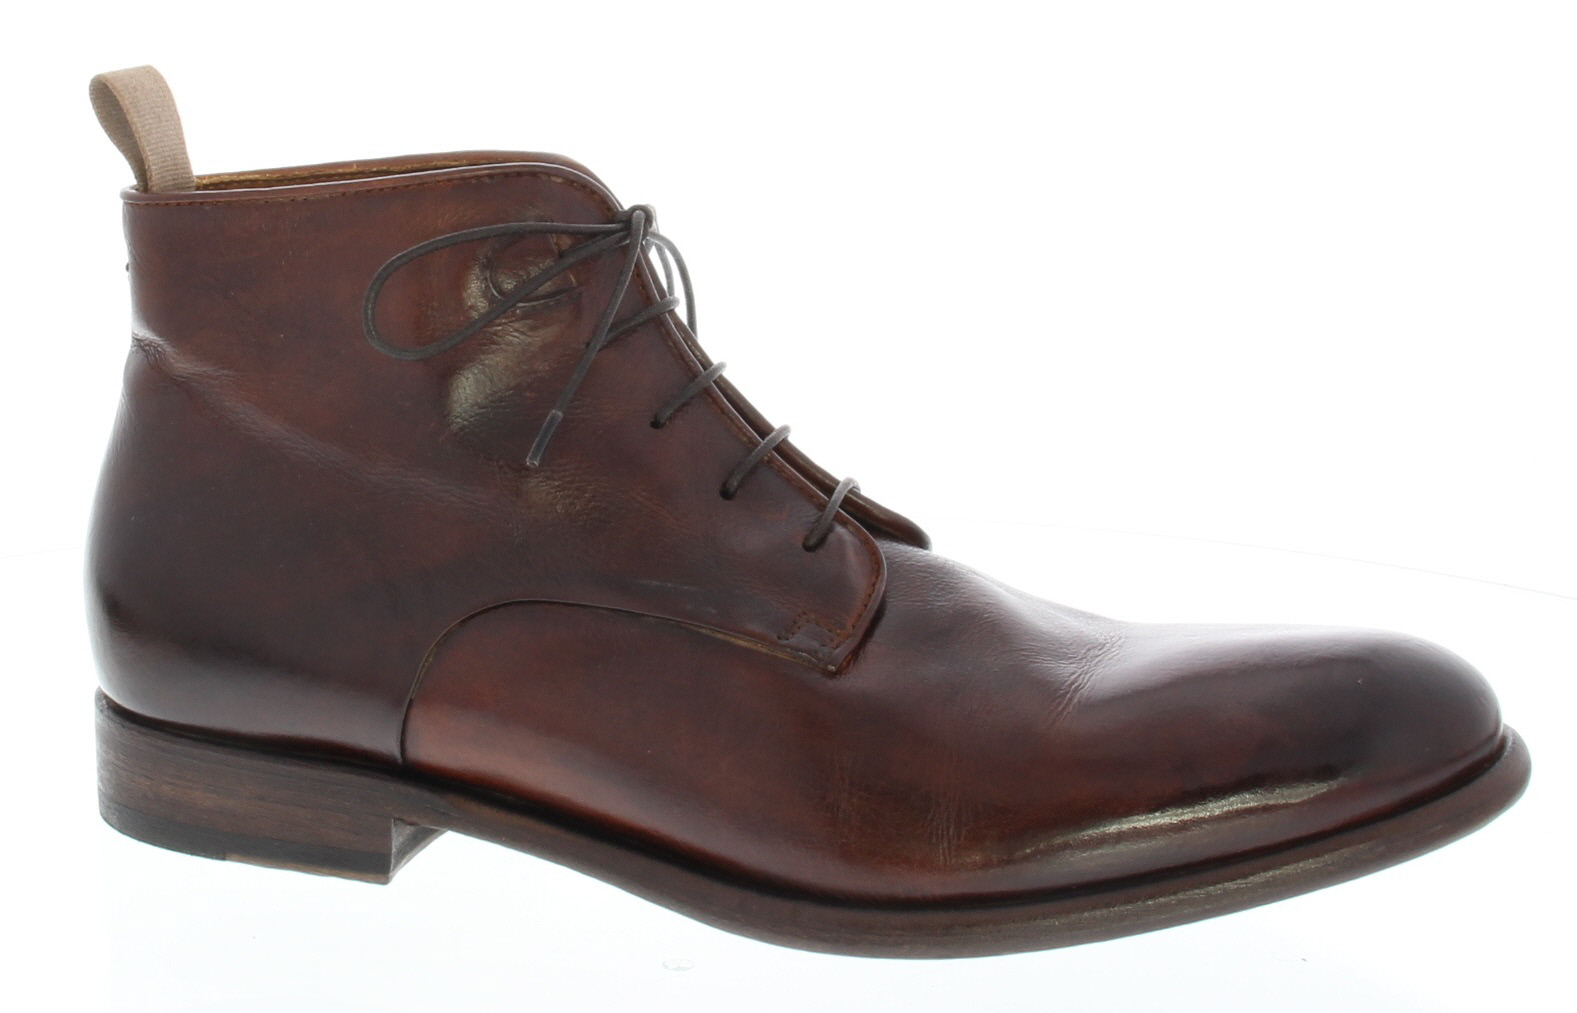 Chaussures Noires Pantanetti En Taille 42 Hommes vfPgK